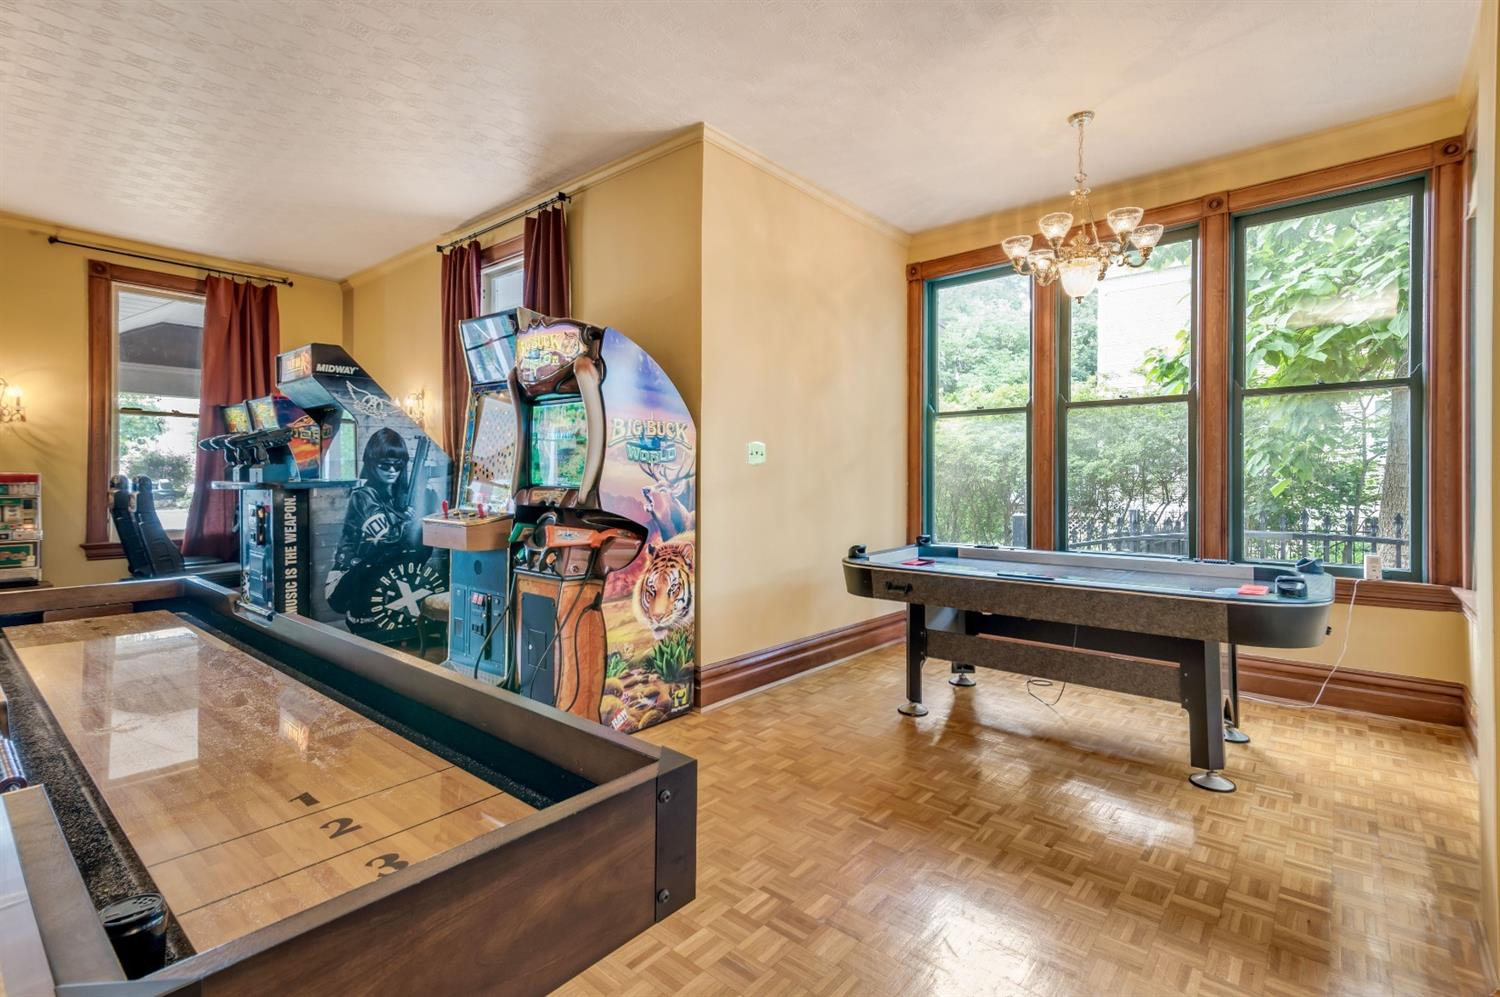 Lots of room to make this living room your own vision.  This home includes 3 family rooms, you'll have fun deciding what to do!